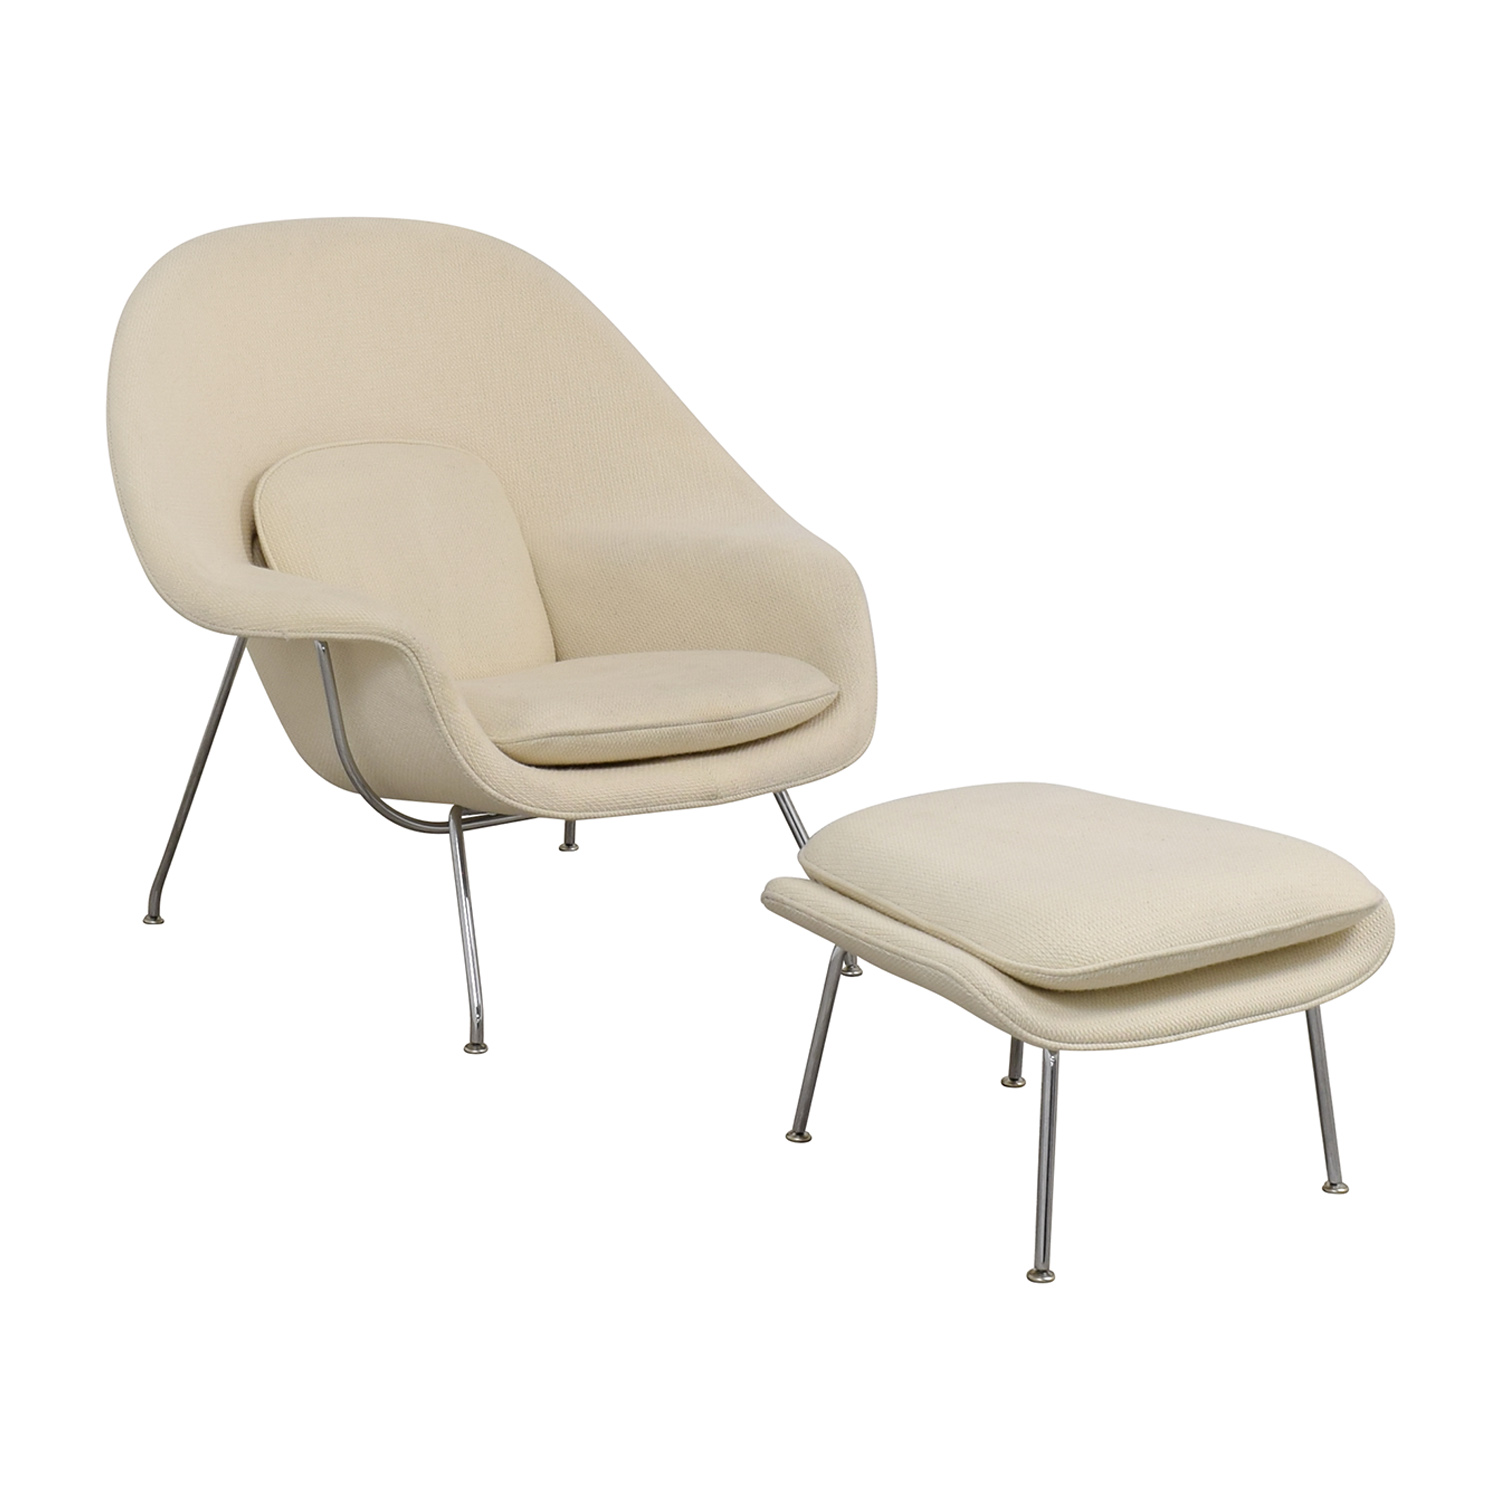 65 Off Knoll Knoll Eero Saarinen Womb Chair And Womb